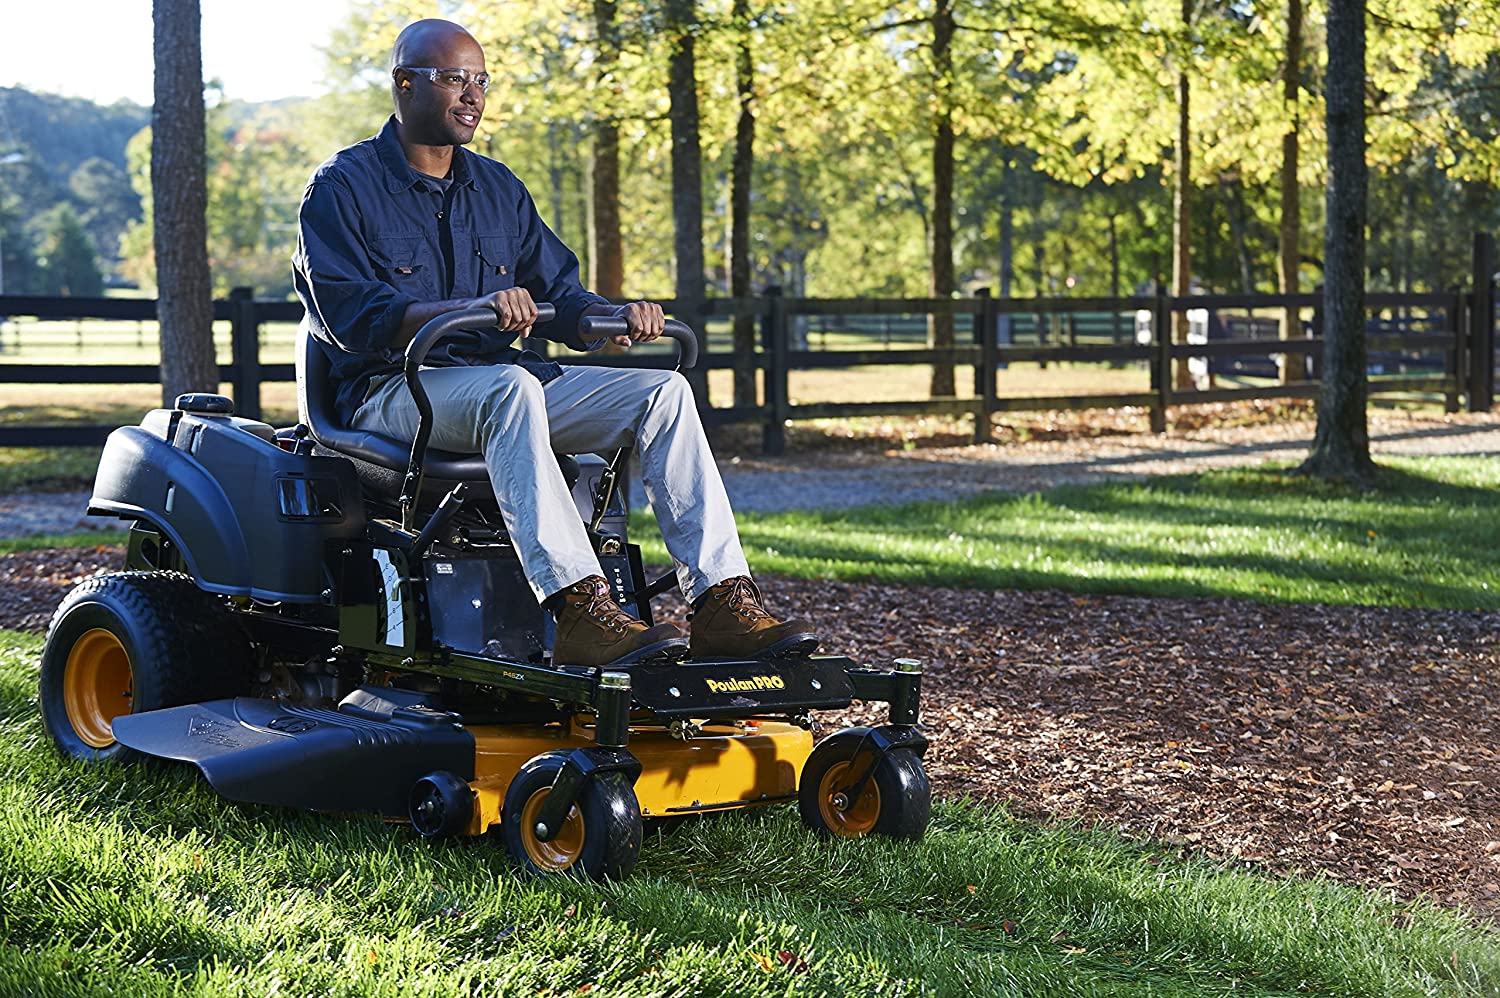 10 Best Riding Lawn Mower for 2 Acres reviews 2021